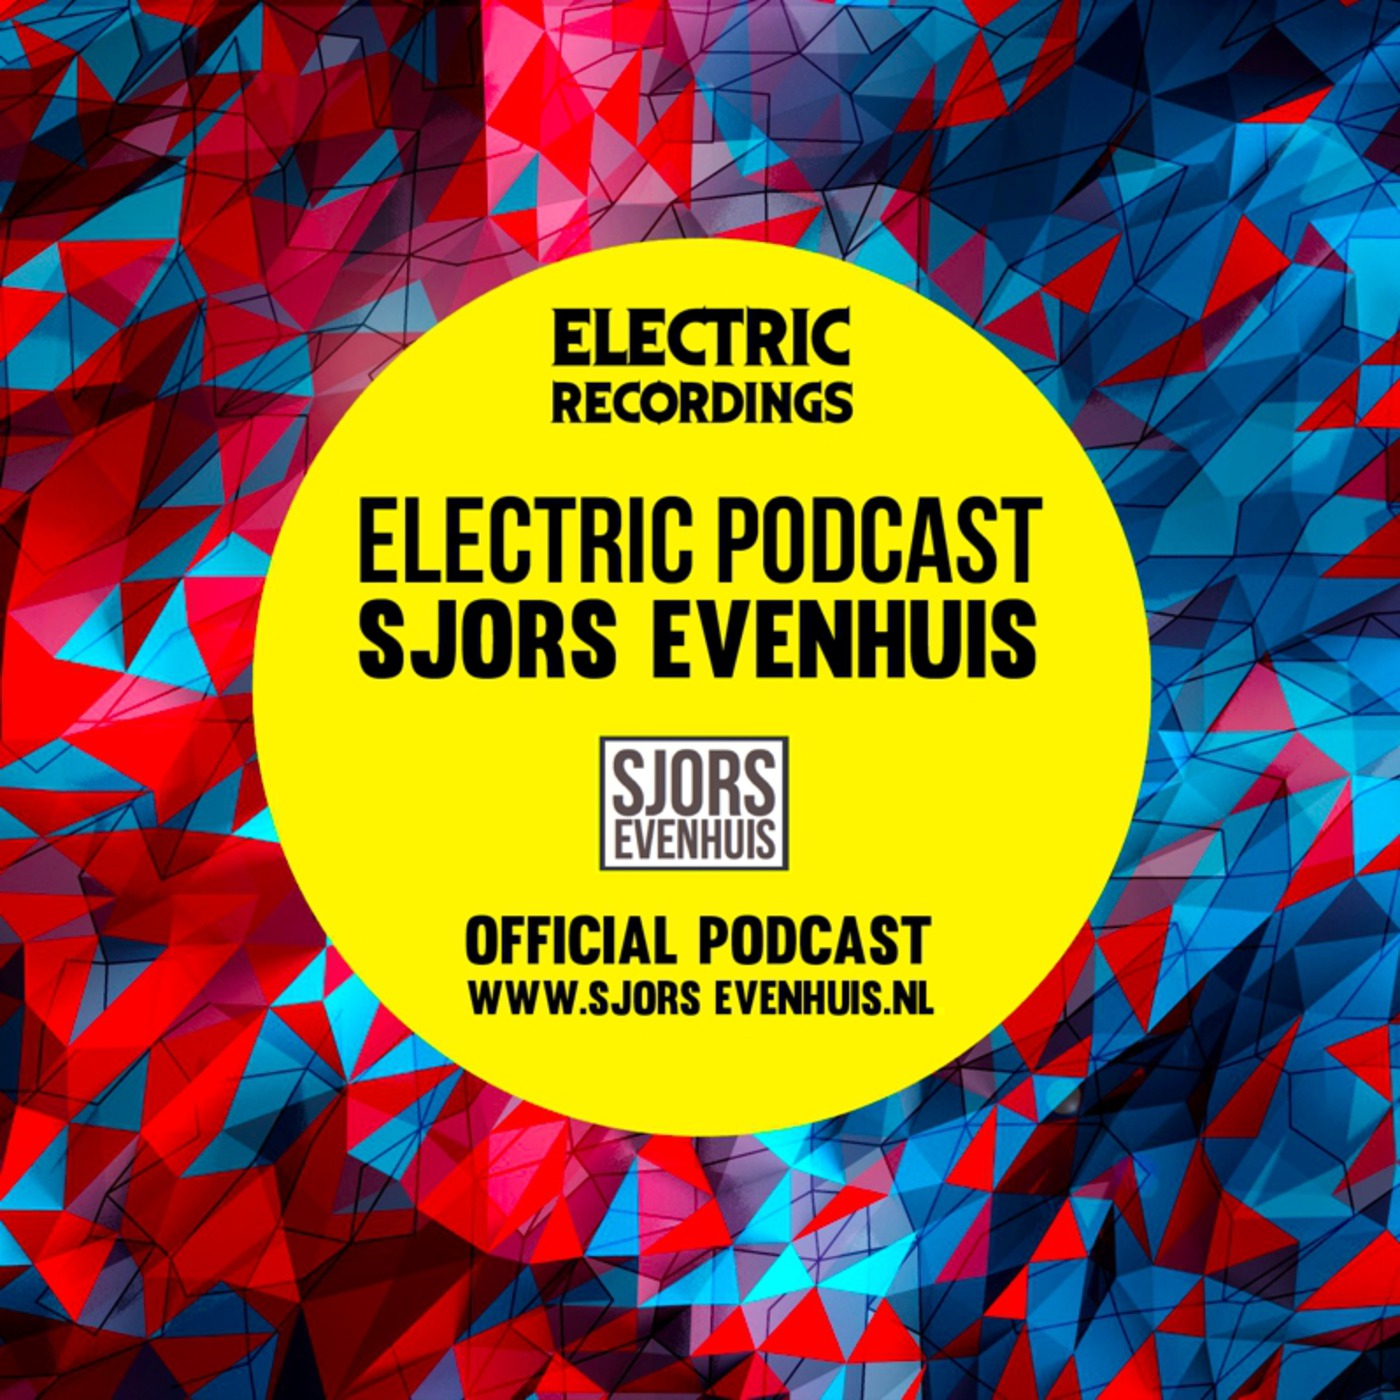 Electric Podcast